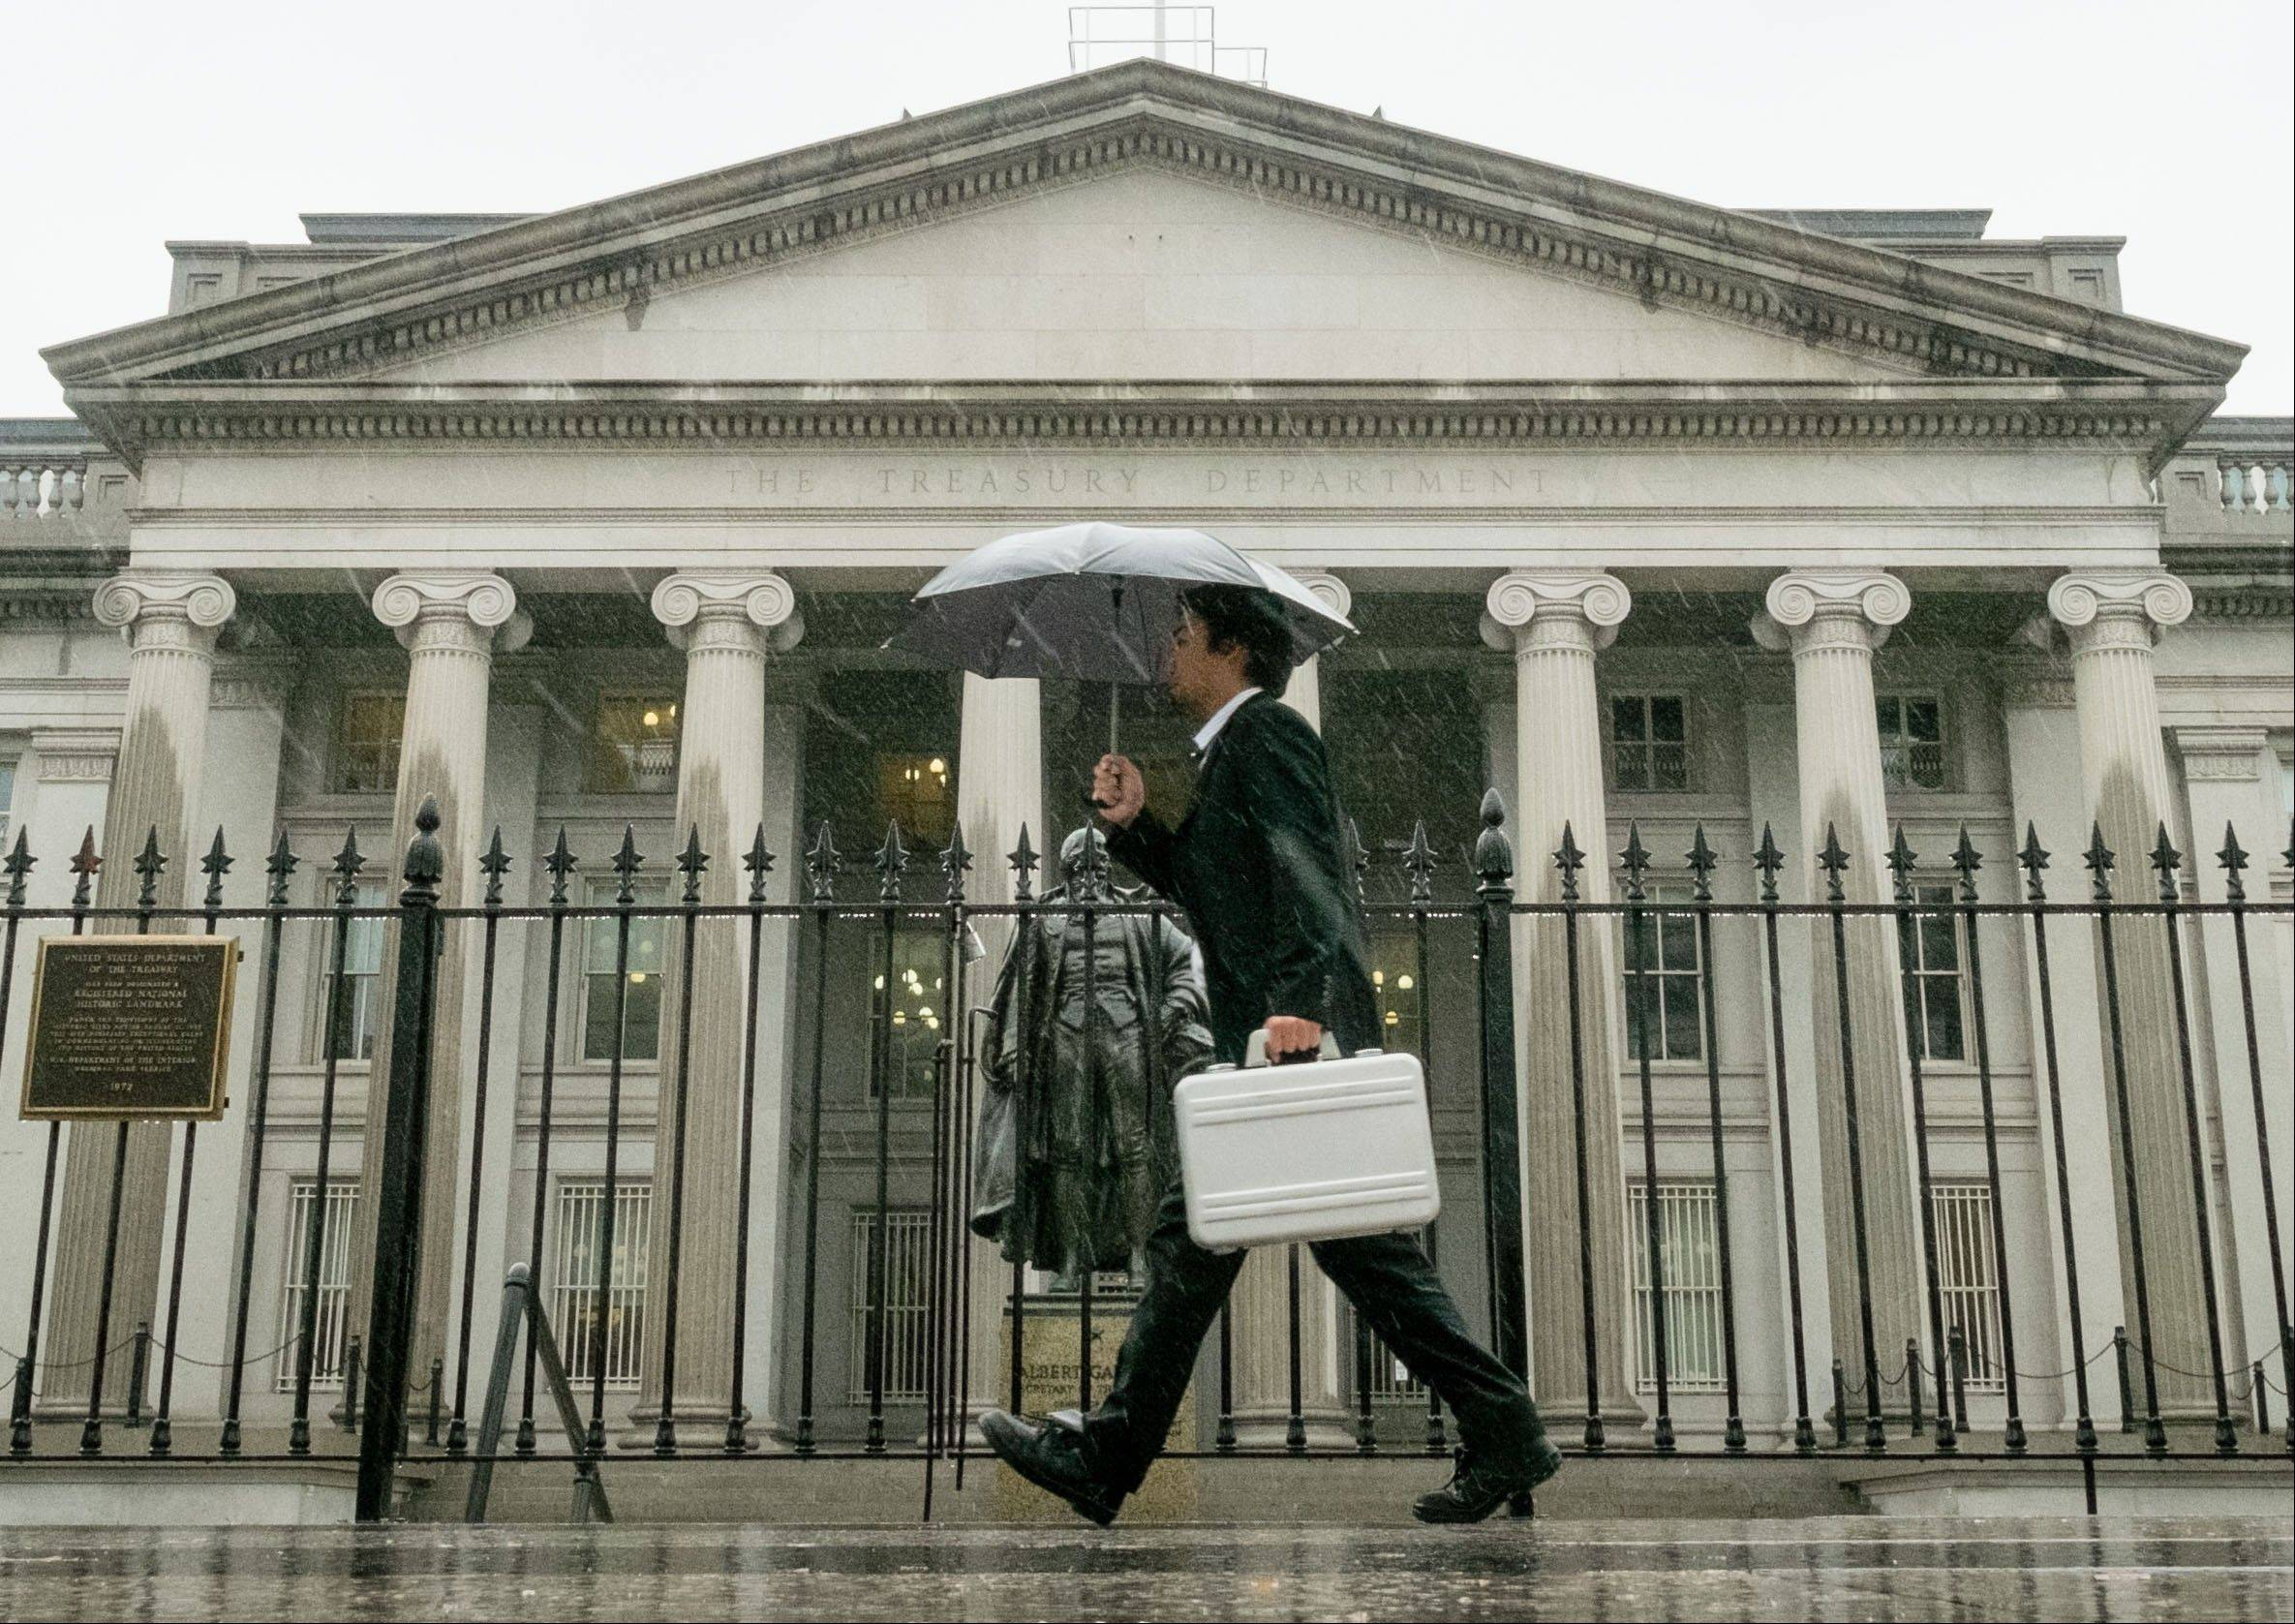 In this TOct. 10 photo, a pedestrian walks past the U.S. Treasury Building in Washington on a rainy day. The national debt actually reached the limit in May 2013. Since then, Treasury Secretary Jacob Lew has made accounting moves to continue financing the government without further borrowing. But Lew says those measures will be exhausted by Thursday, Oct. 17. The government will then have to pay its bills from its cash on hand an estimated $30 billion and tax revenue.